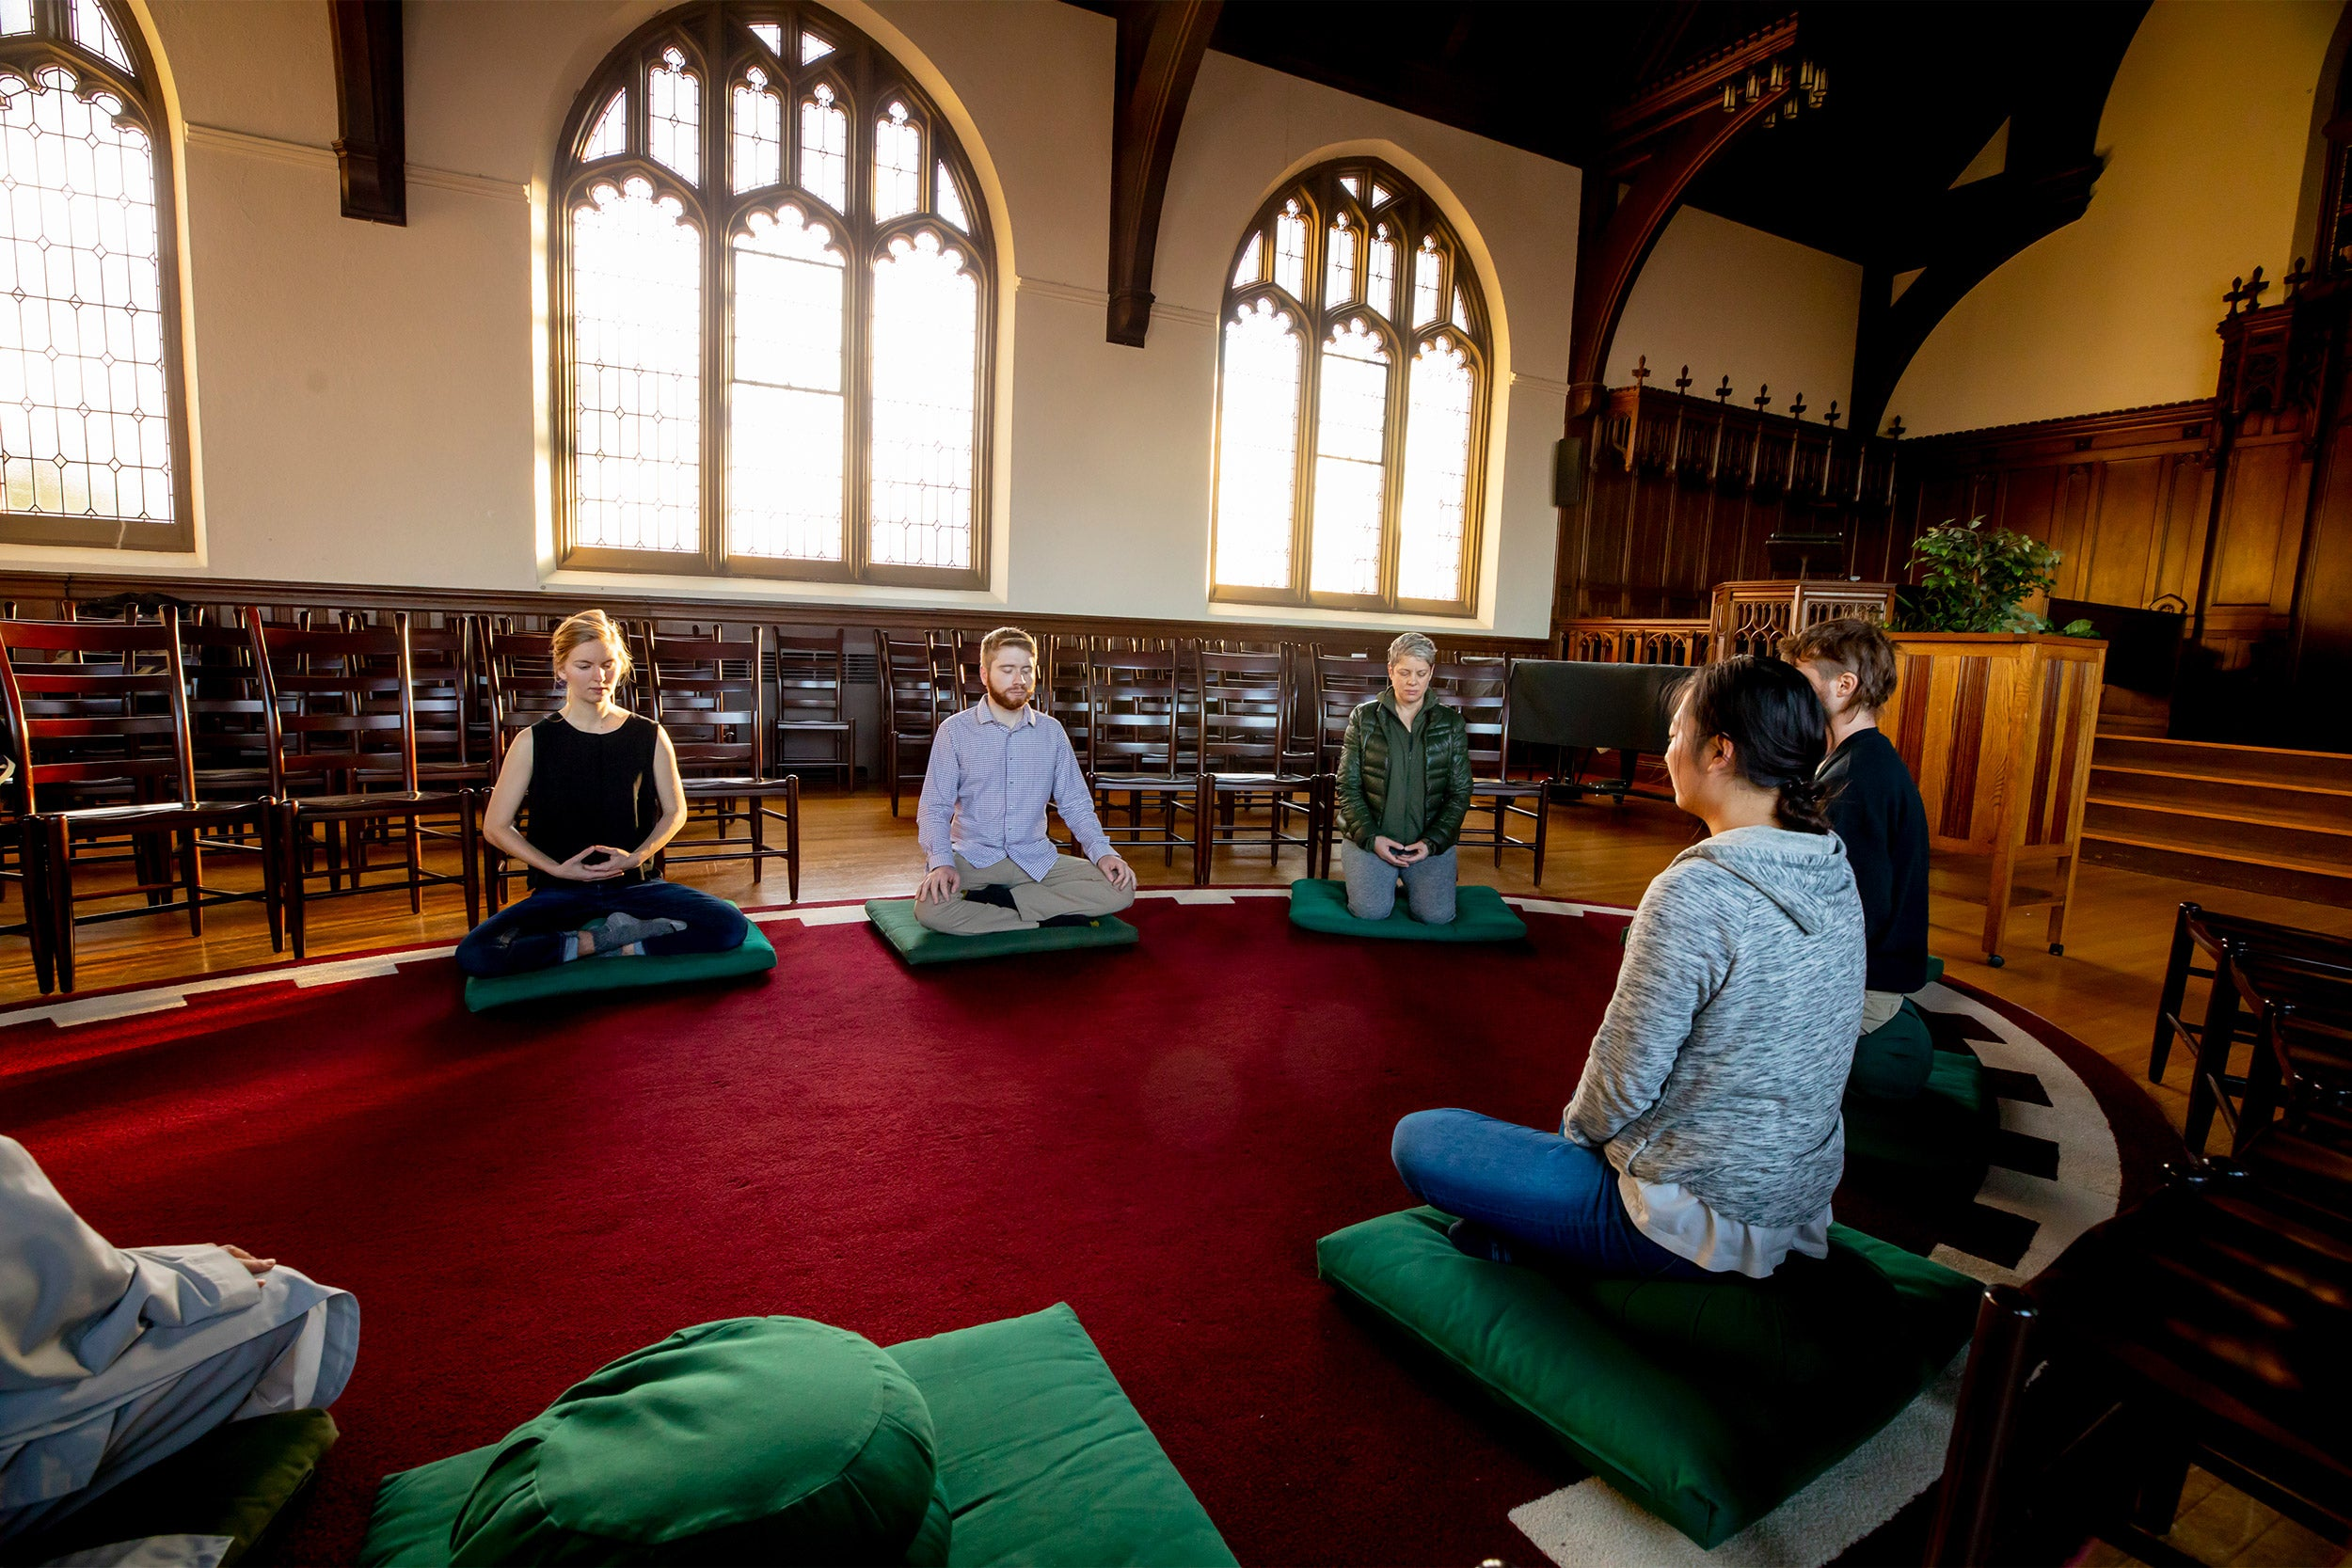 Meditation session at the Harvard Divinity School